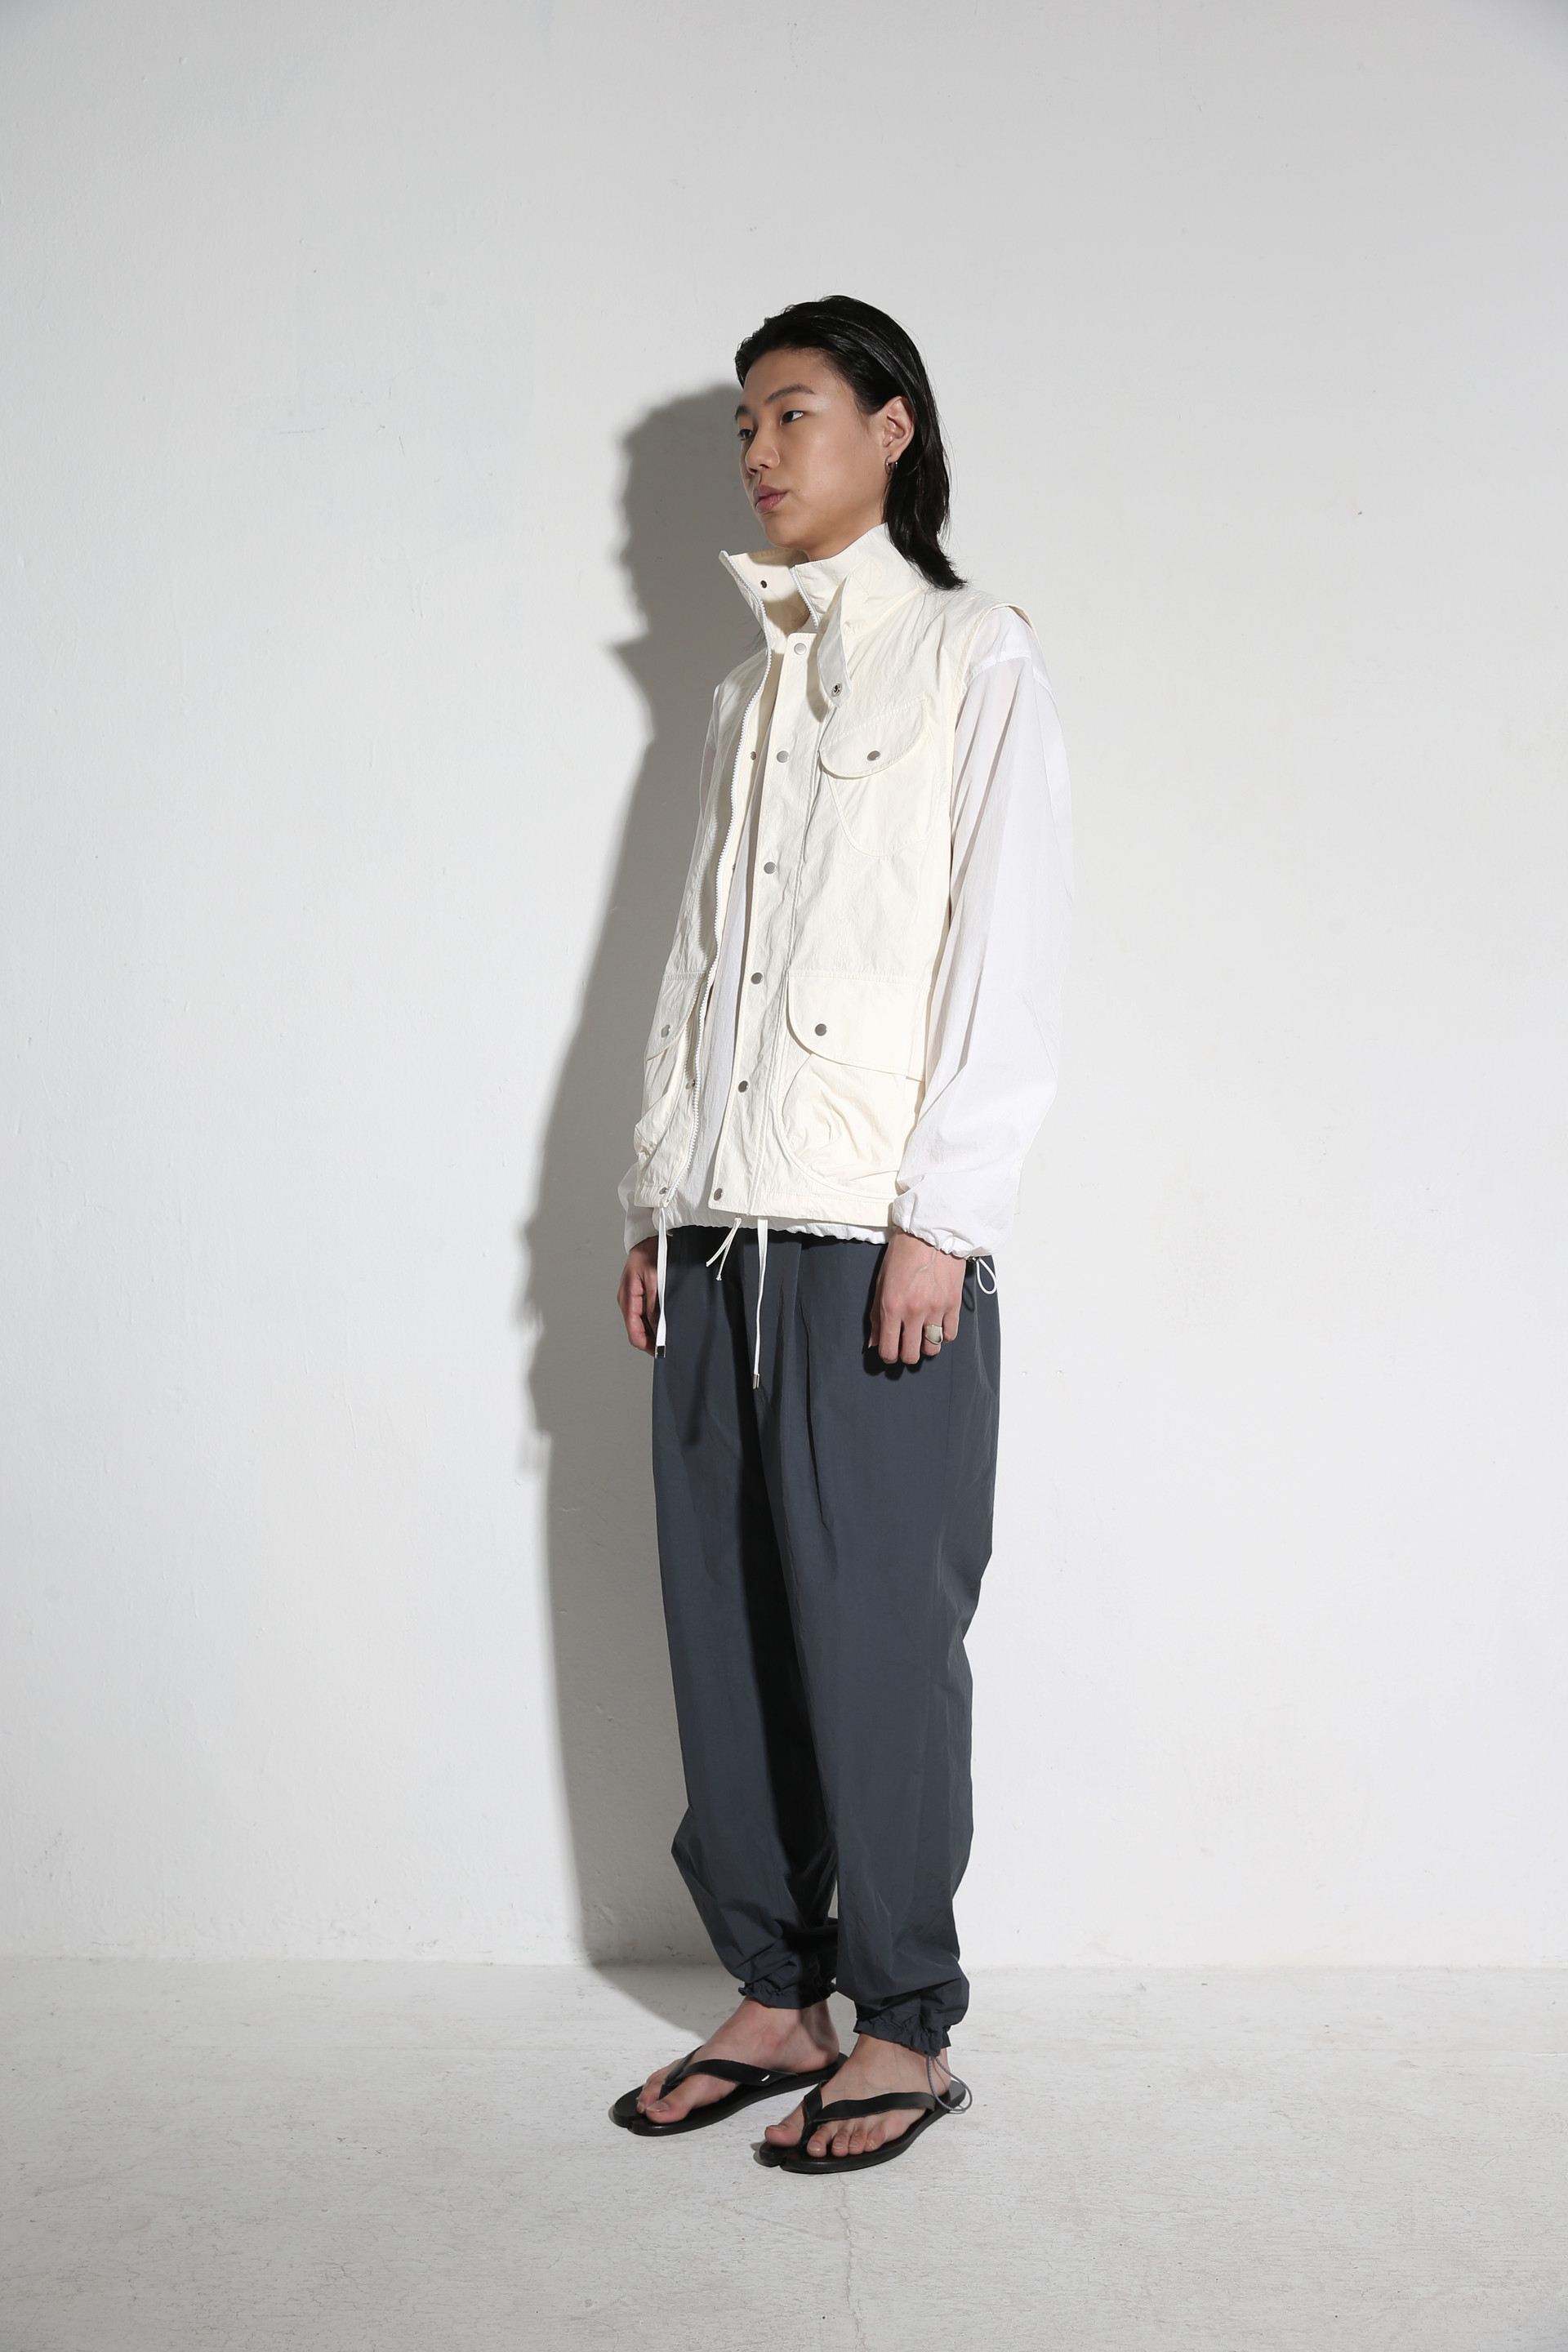 Look 8 - SS21